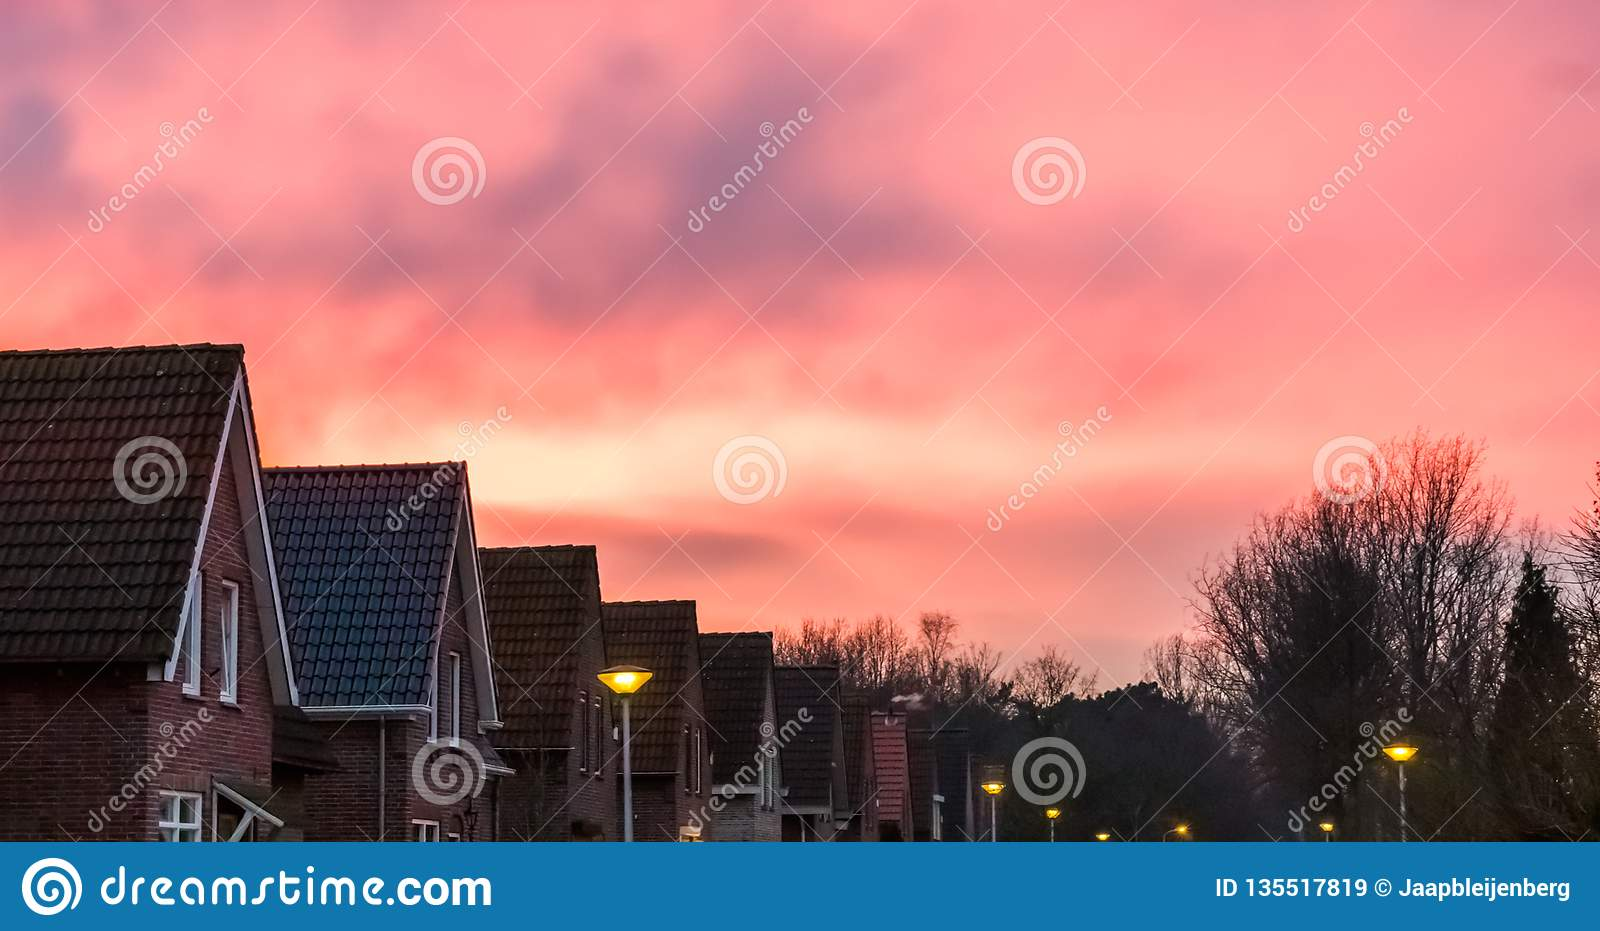 Sunset in a dutch neighborhood, pink nacreous clouds in the sky, a rare weather phenomenon